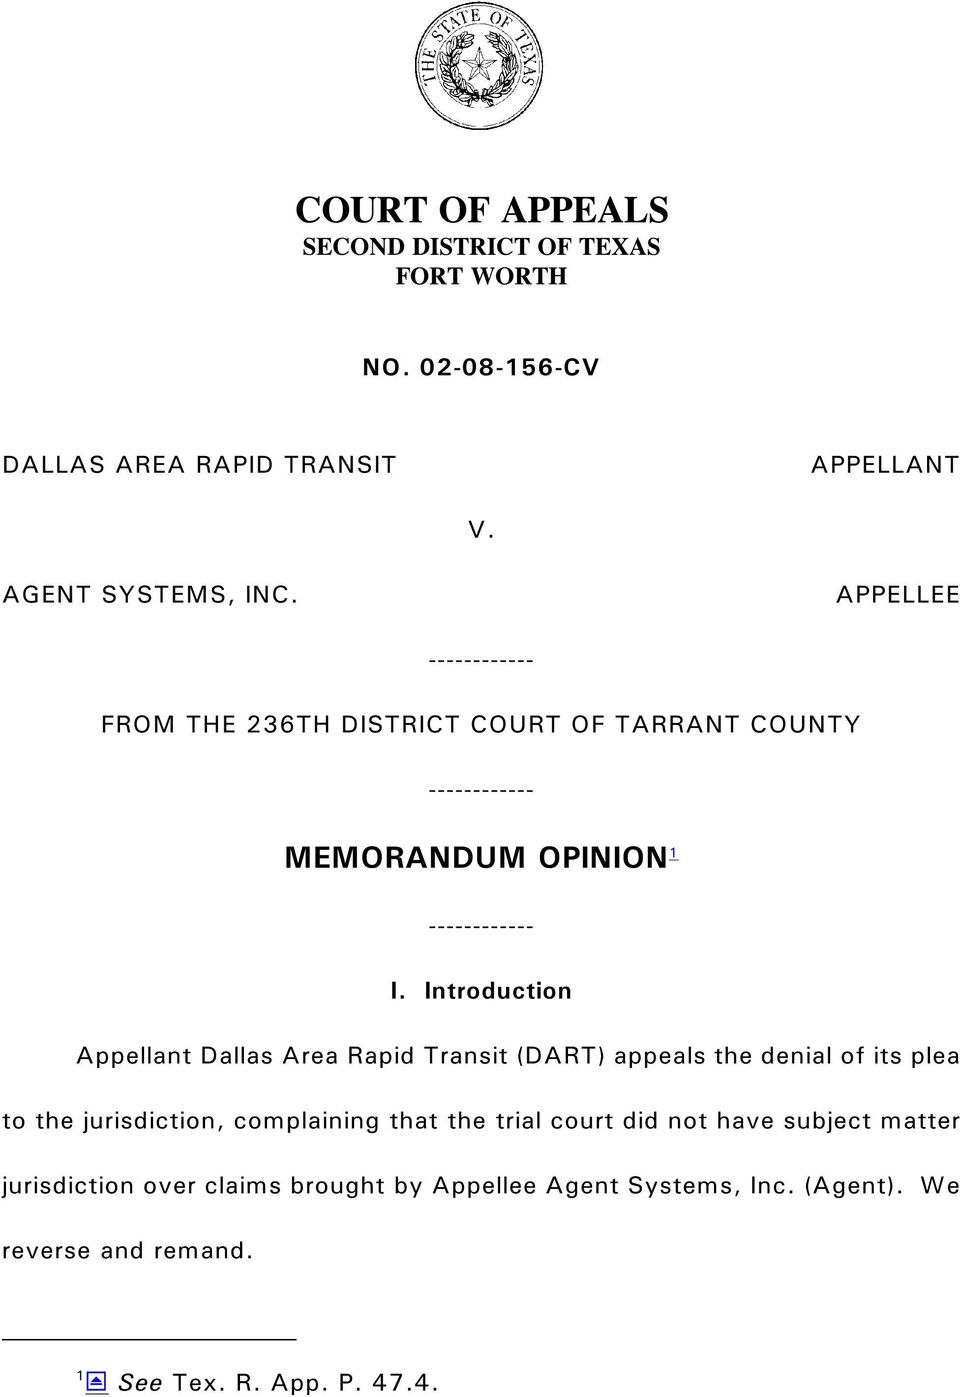 Introduction Appellant Dallas Area Rapid Transit (DART) appeals the denial of its plea to the jurisdiction, complaining that the trial